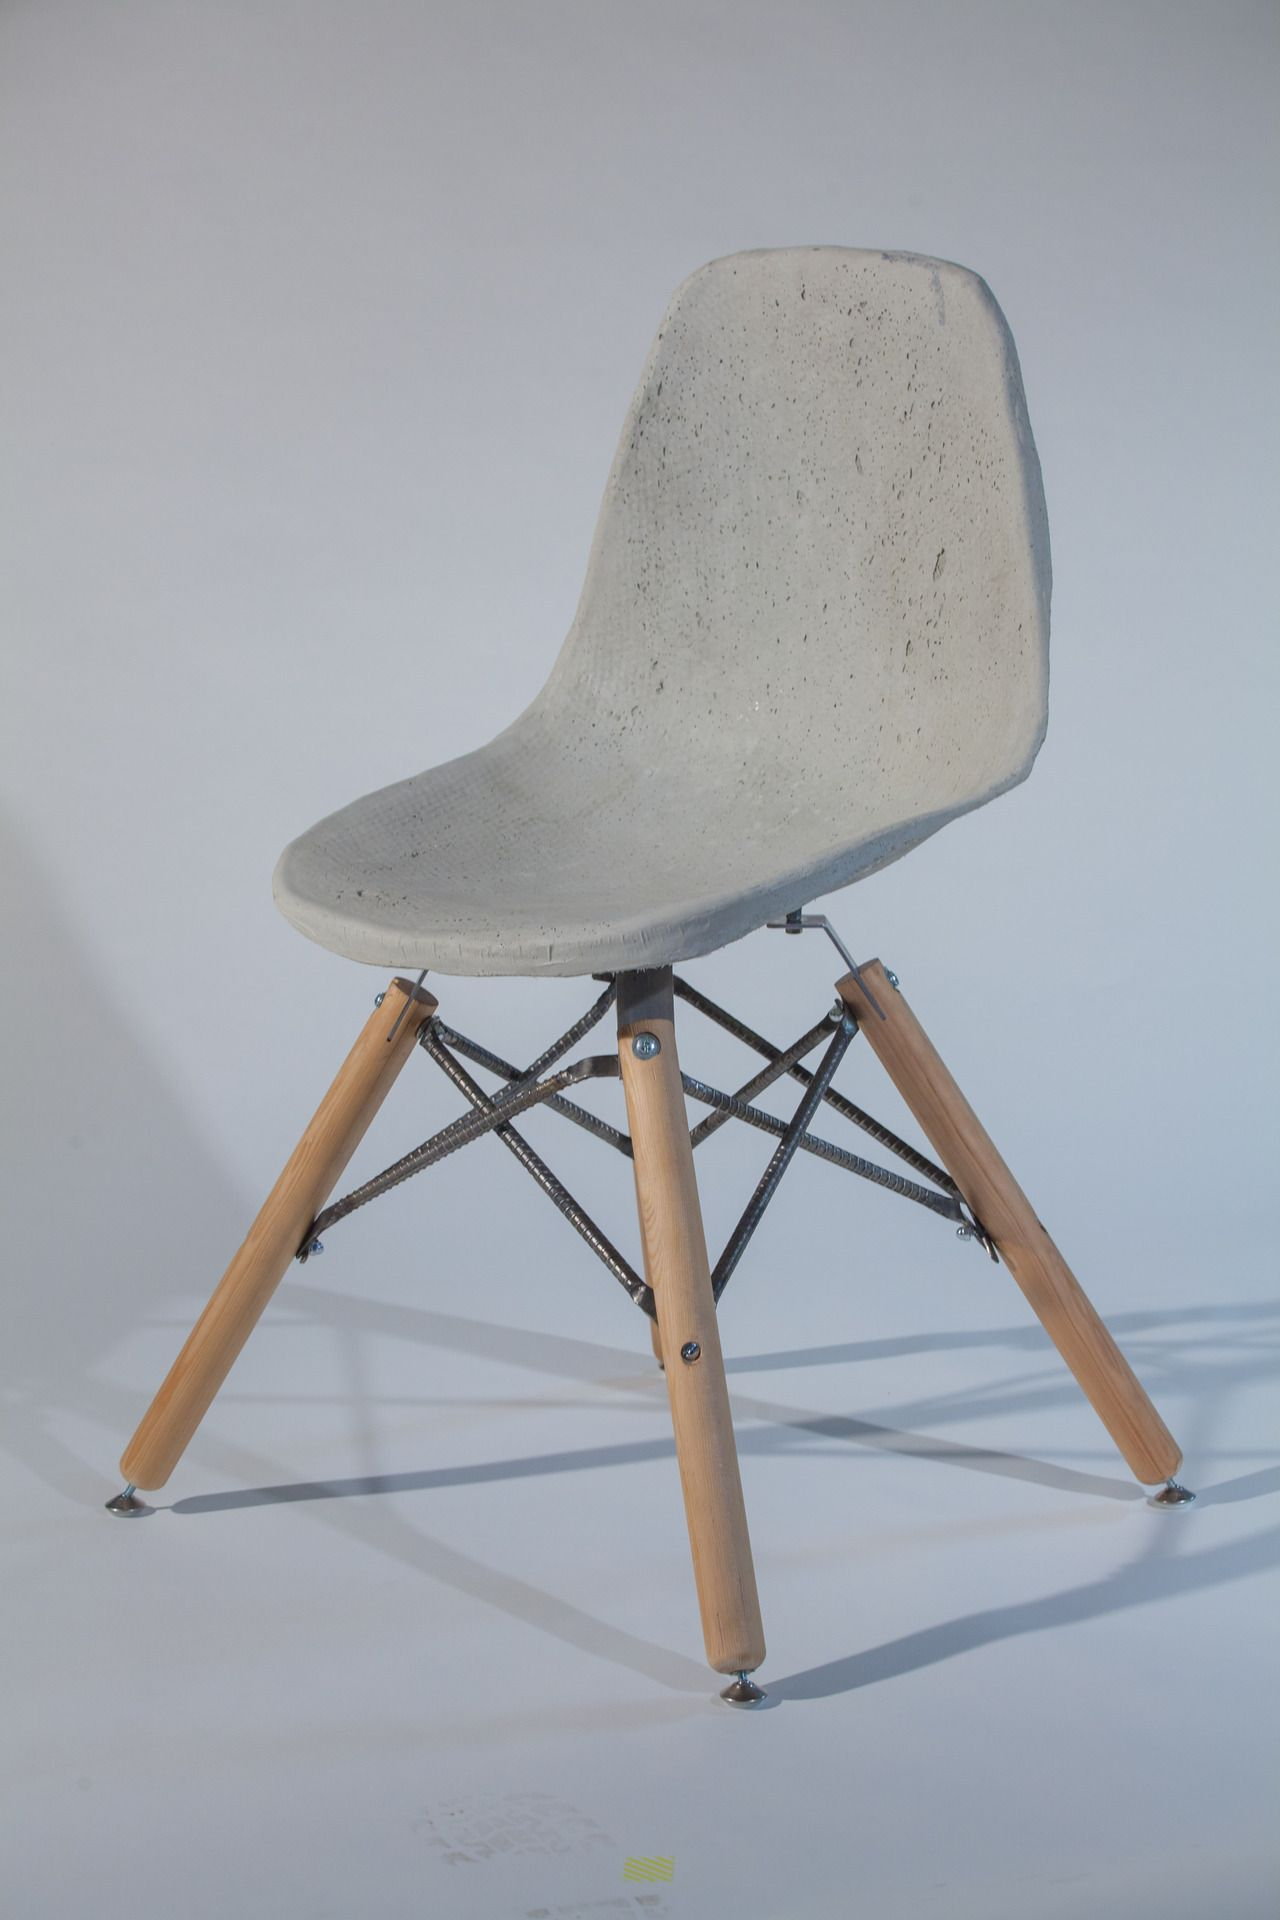 Concrete Rebar Chairs Saville And Knight Concrete Chair By Canadian Designer Ryan